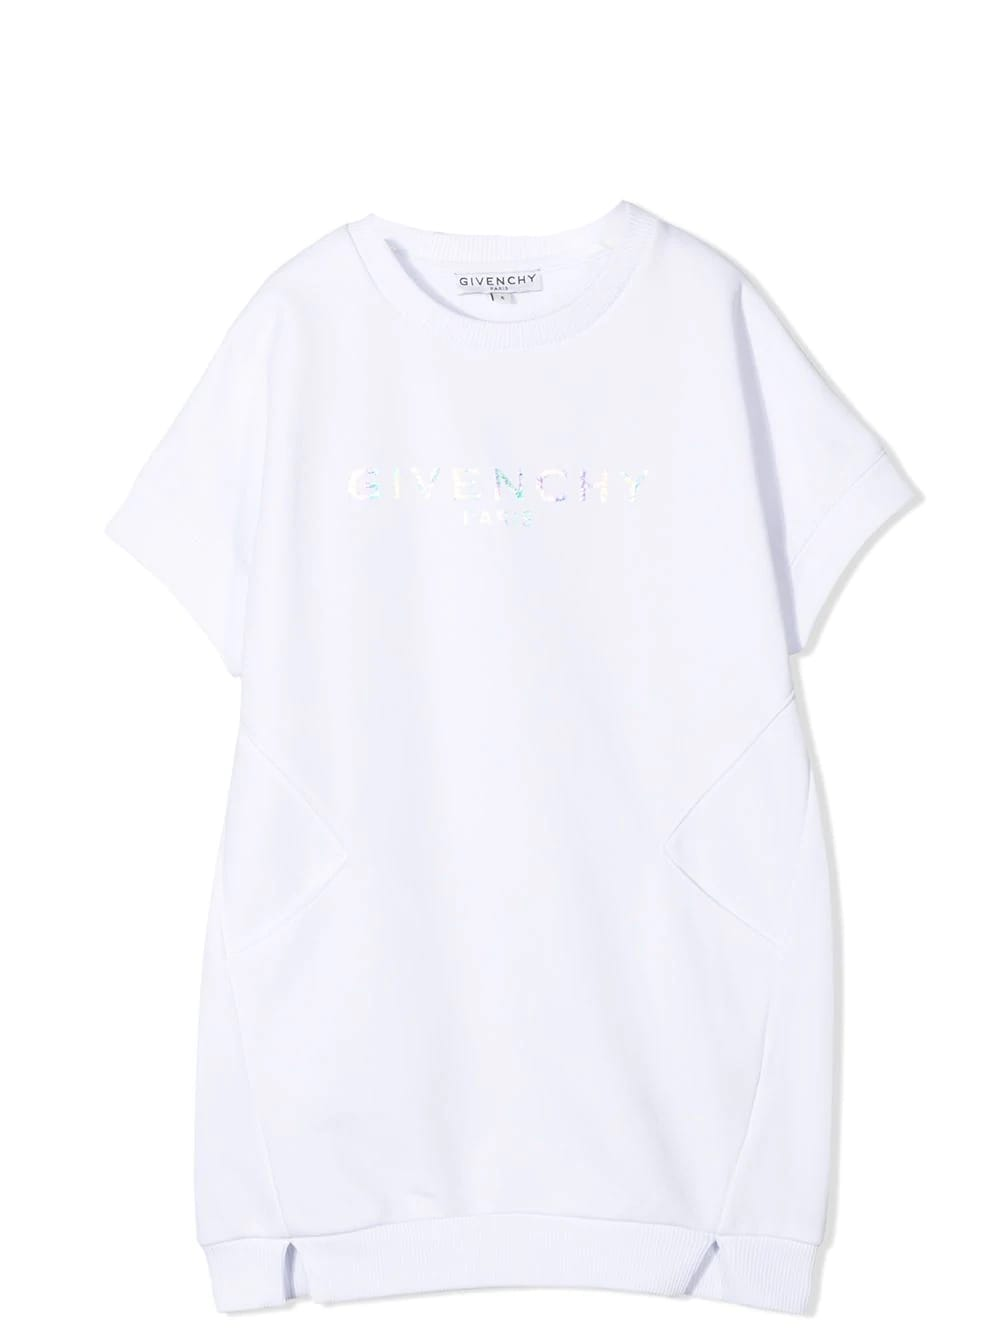 Buy Givenchy Dress Model T-shirt With Print online, shop Givenchy with free shipping